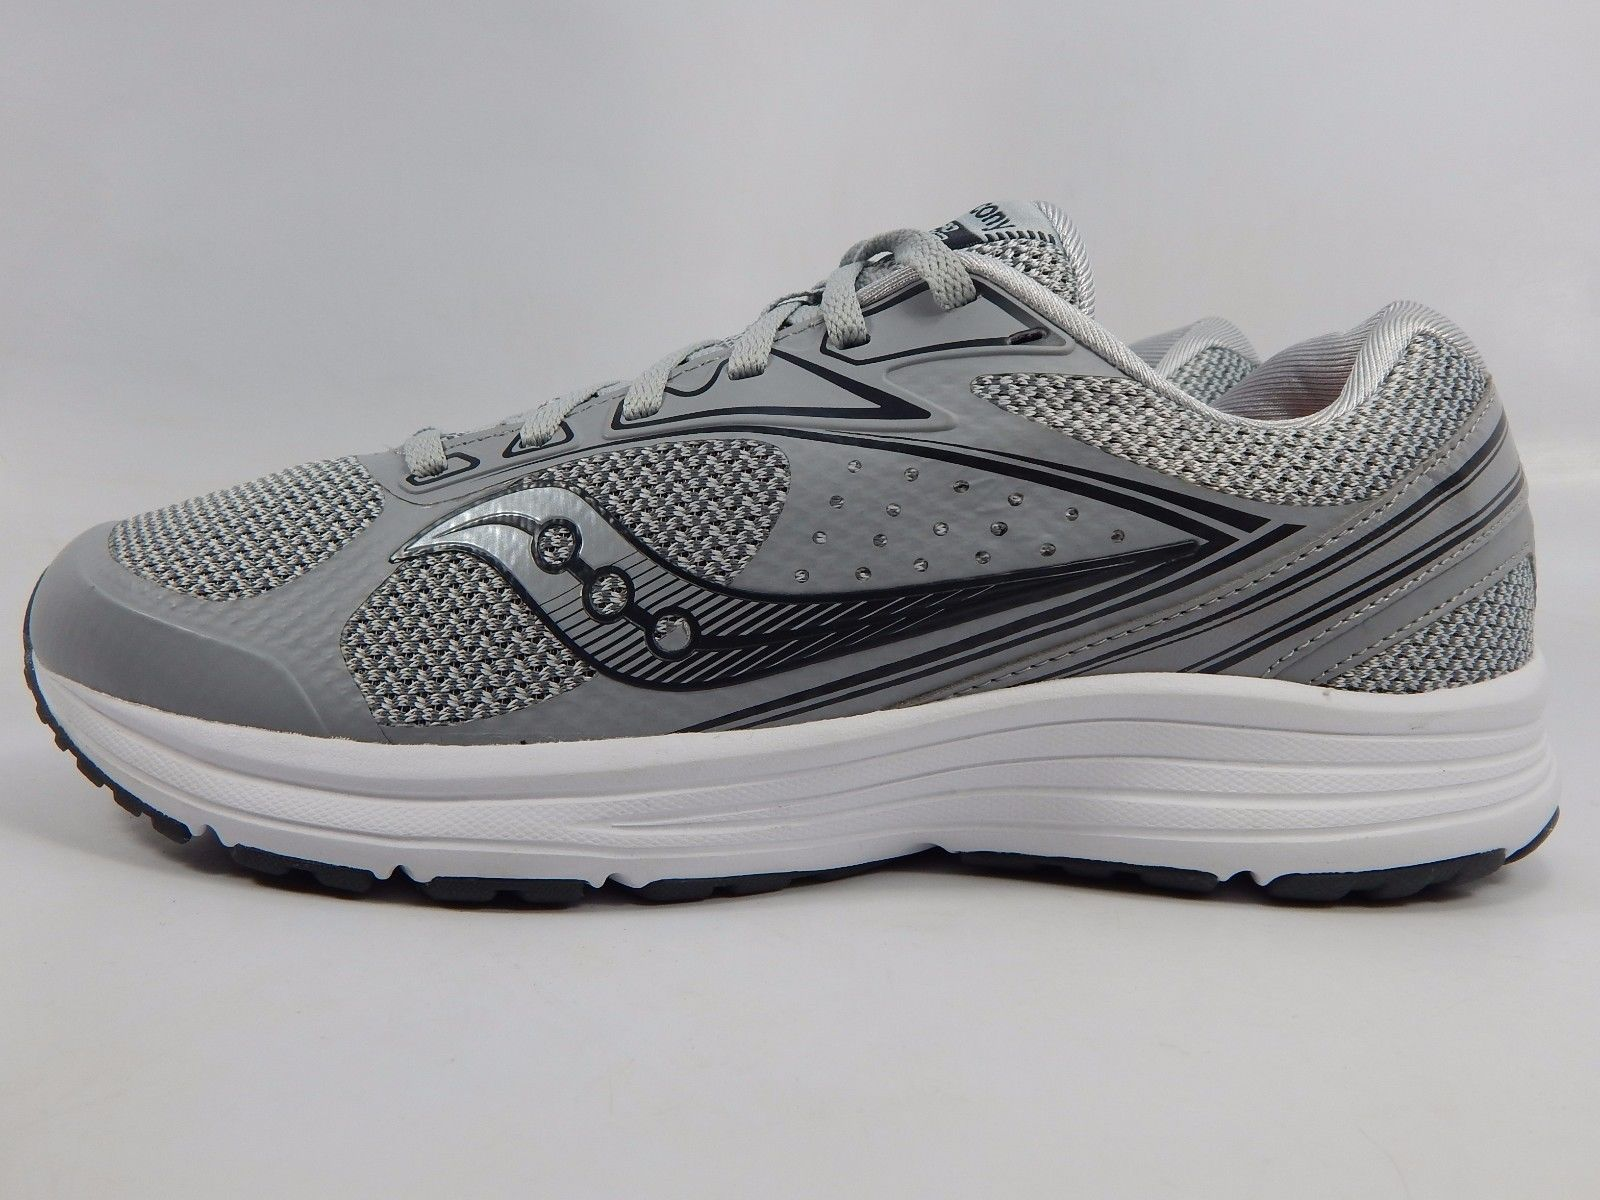 Saucony Grid Seeker Men's Running Shoes Se US 9 M (D) EU 42.5 Silver S25302-10